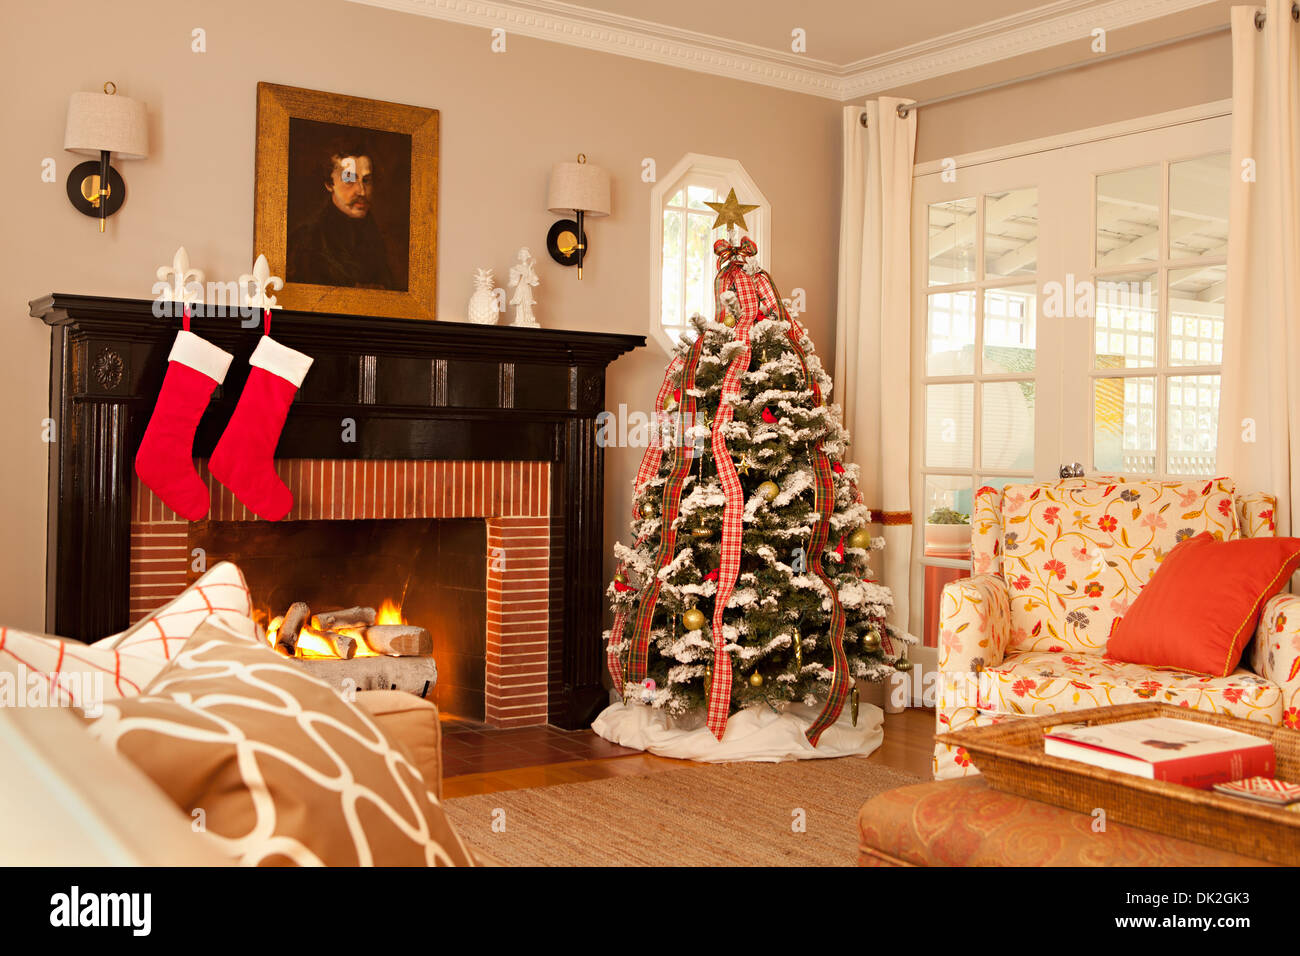 fireplace stock photos u0026 fireplace stock images alamy